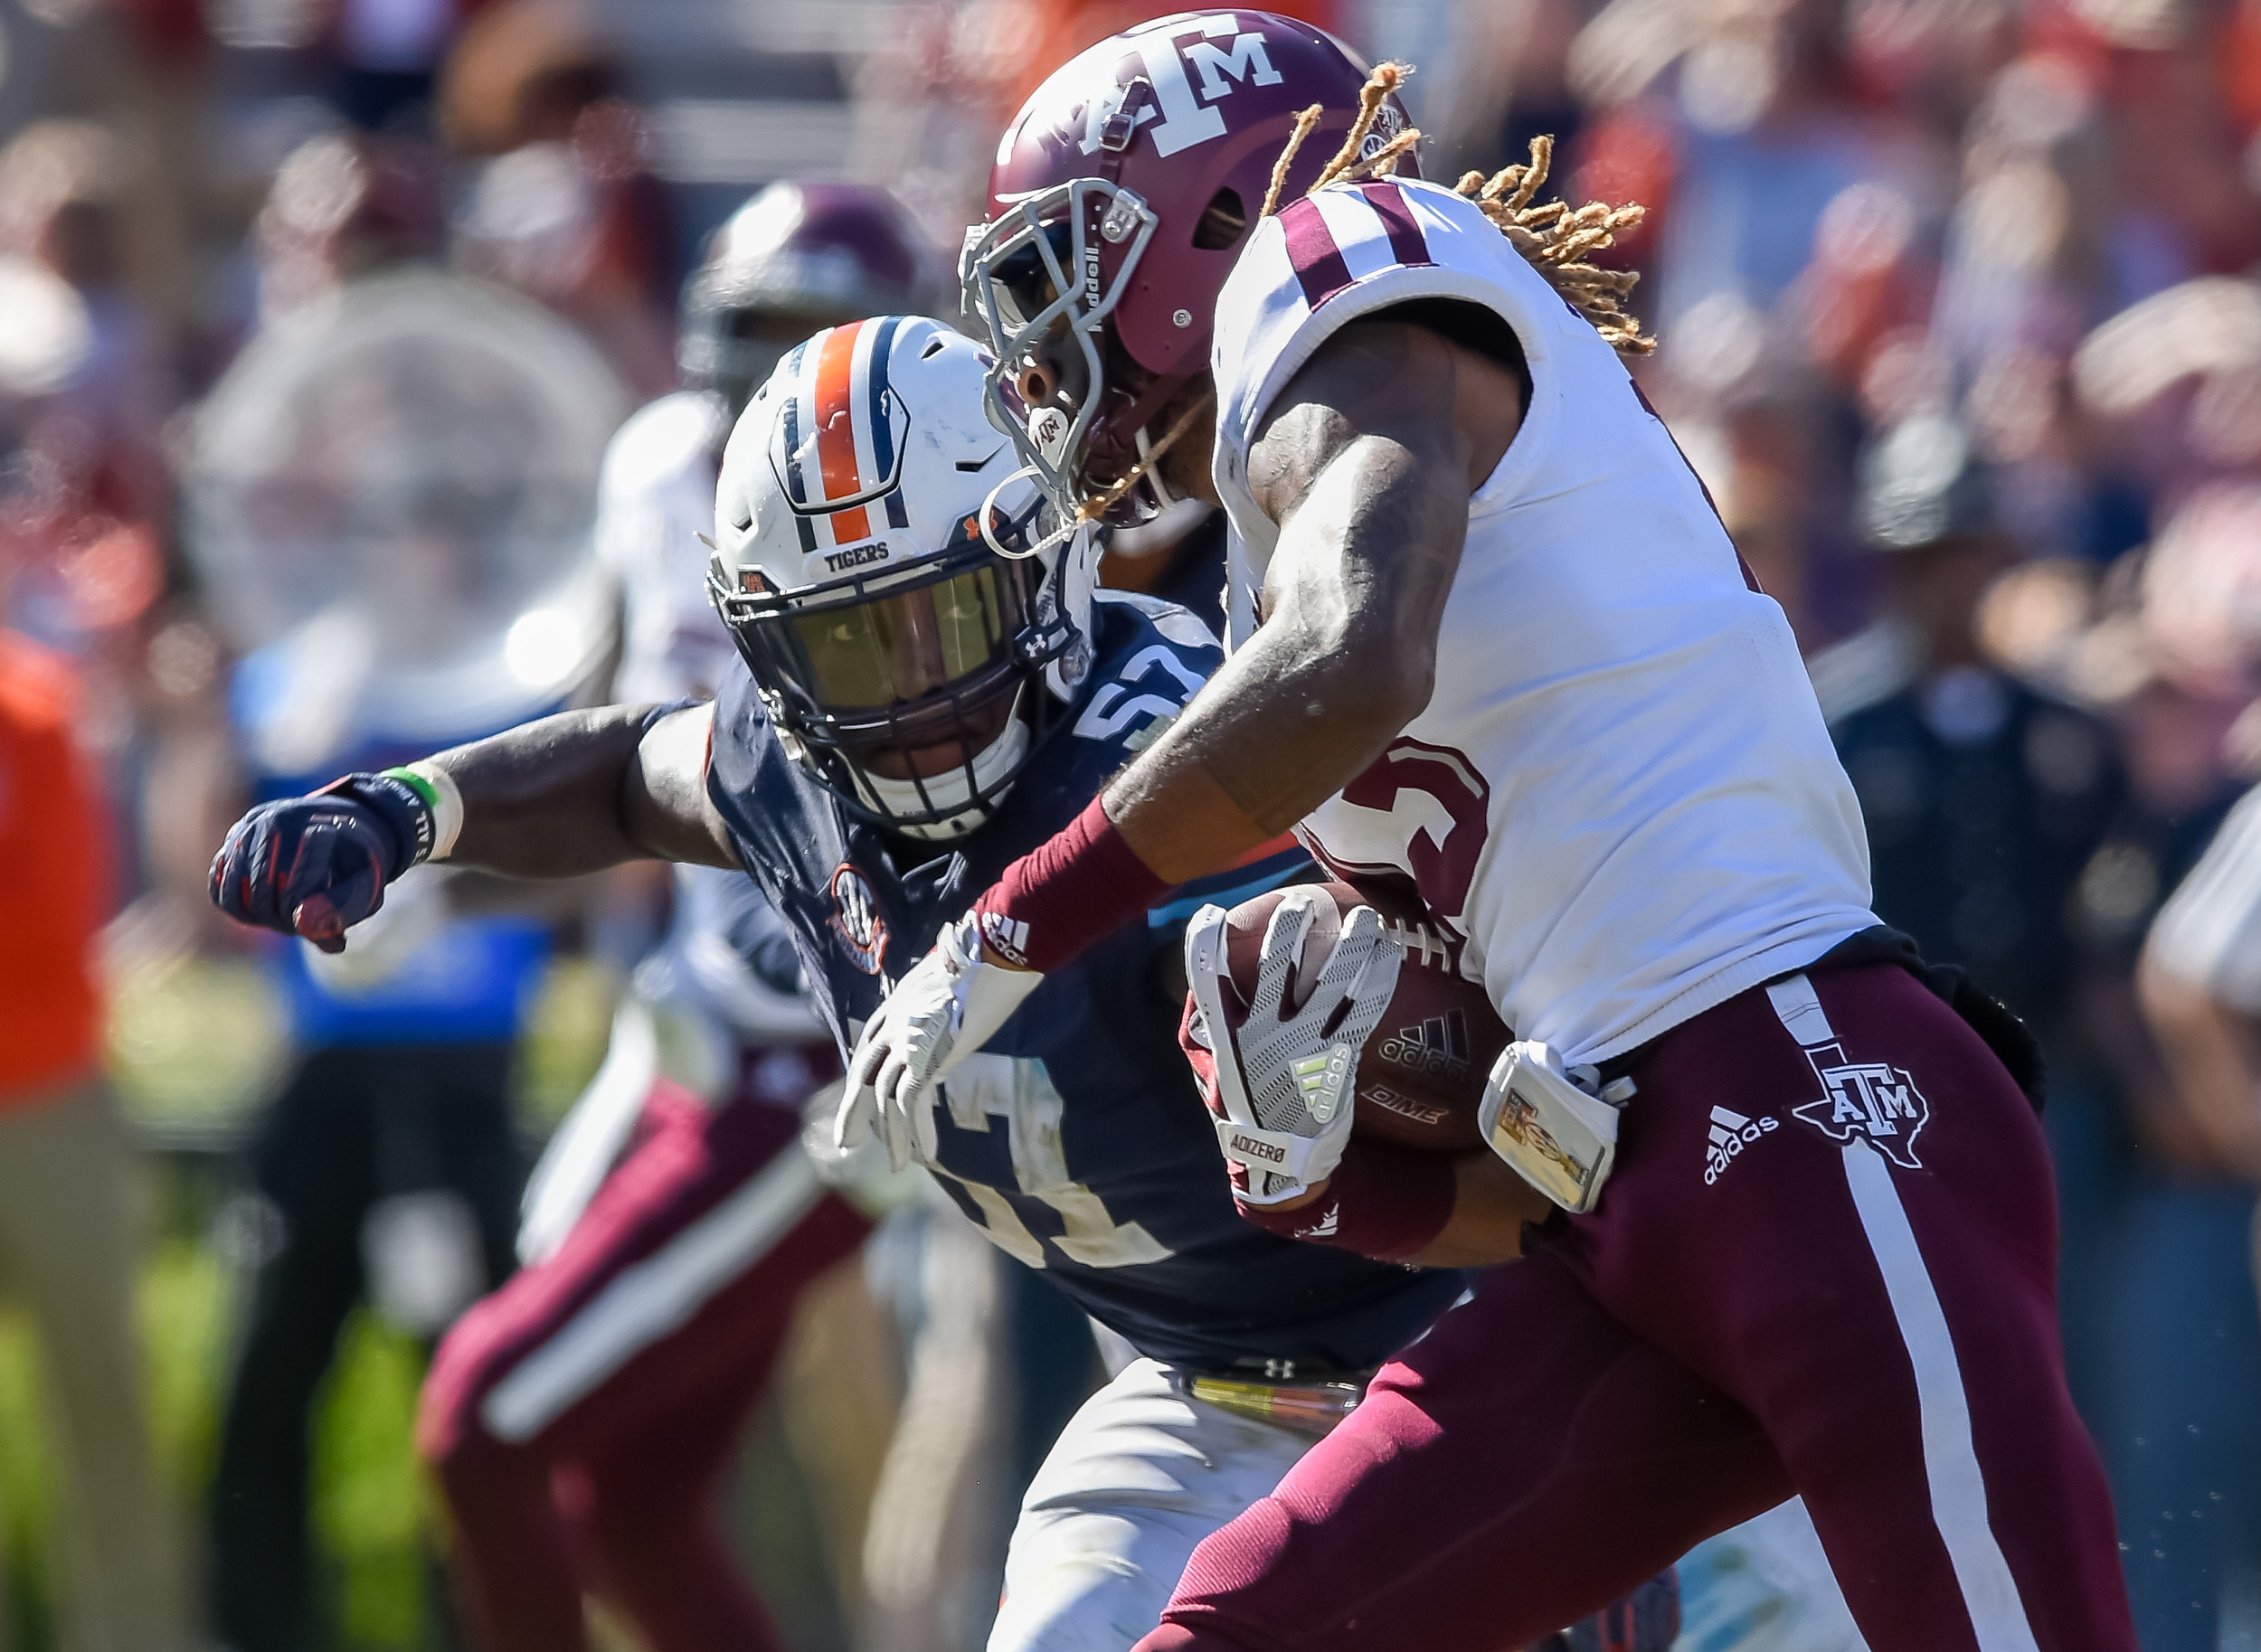 Auburn Tigers linebacker Deshaun Davis (57) eyes Texas A&M Aggies wide receiver Kendrick Rogers (13) during the second half of an NCAA football game Saturday, November 3, 2018, at Jordan-Hare Stadium in Auburn, Ala. (Photo by Jeff Johnsey)